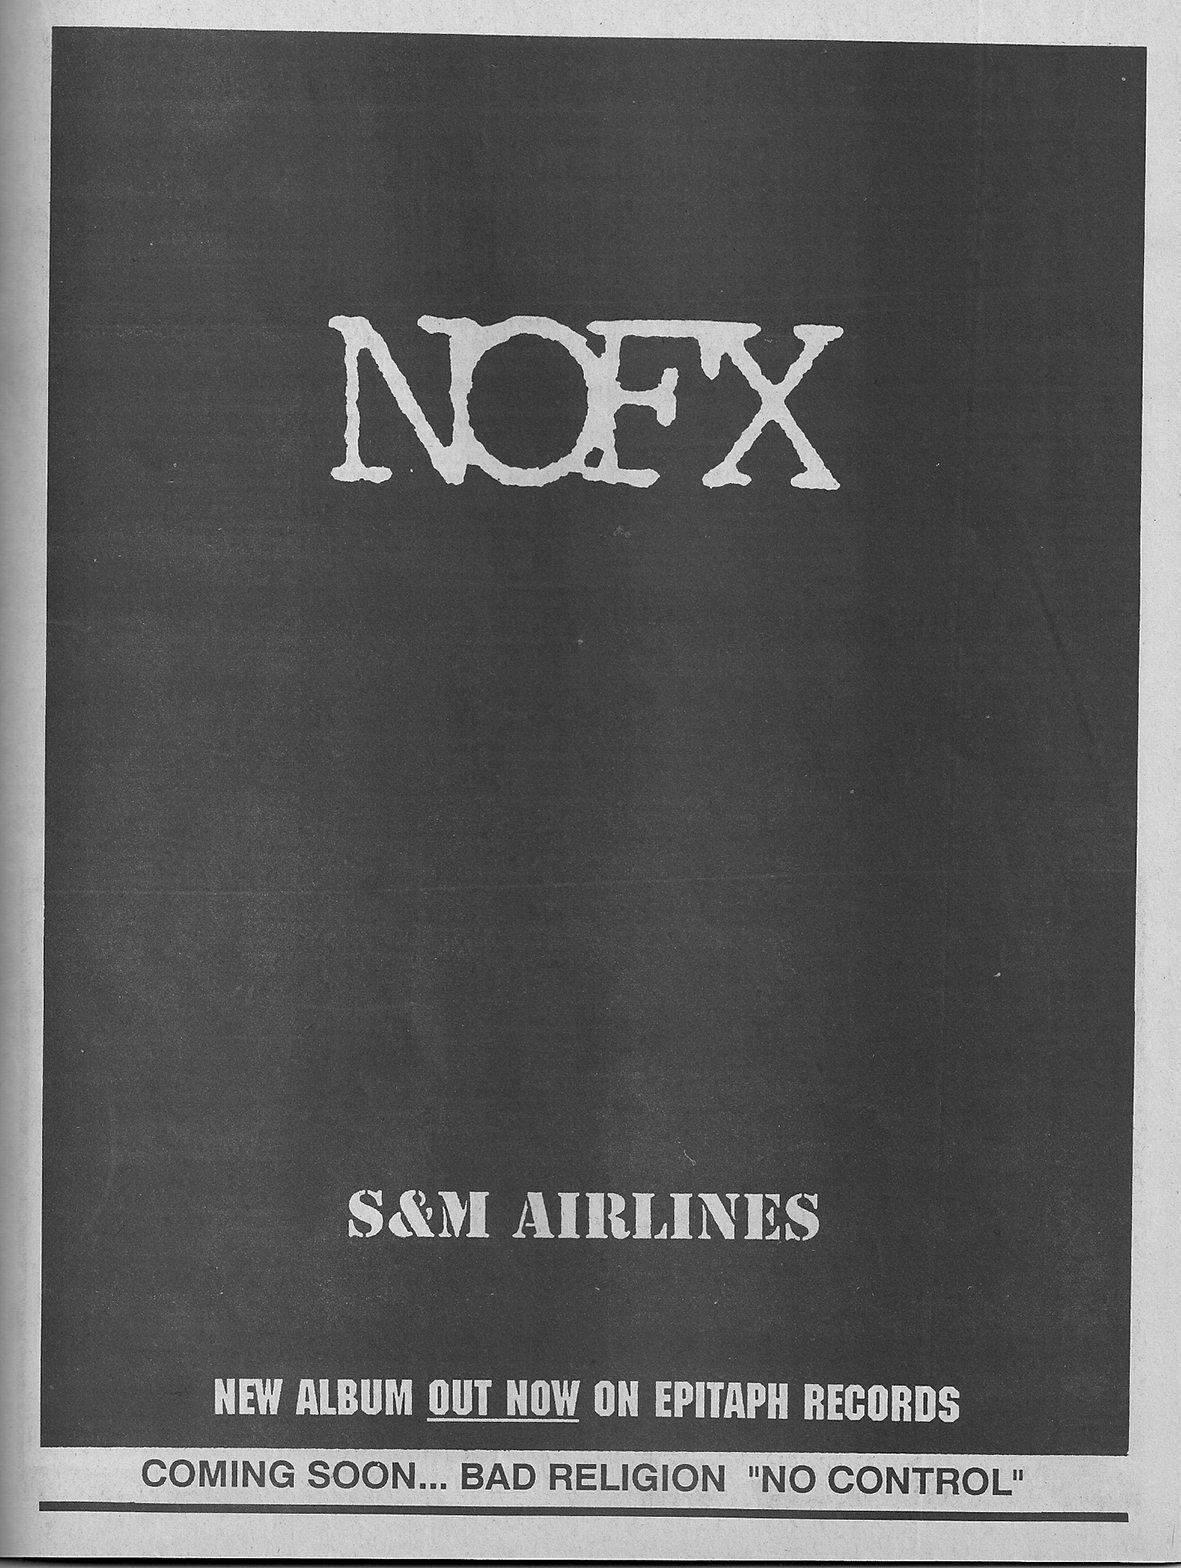 NOFX S&M Airlines Epitaph Advertising Flipside 1989